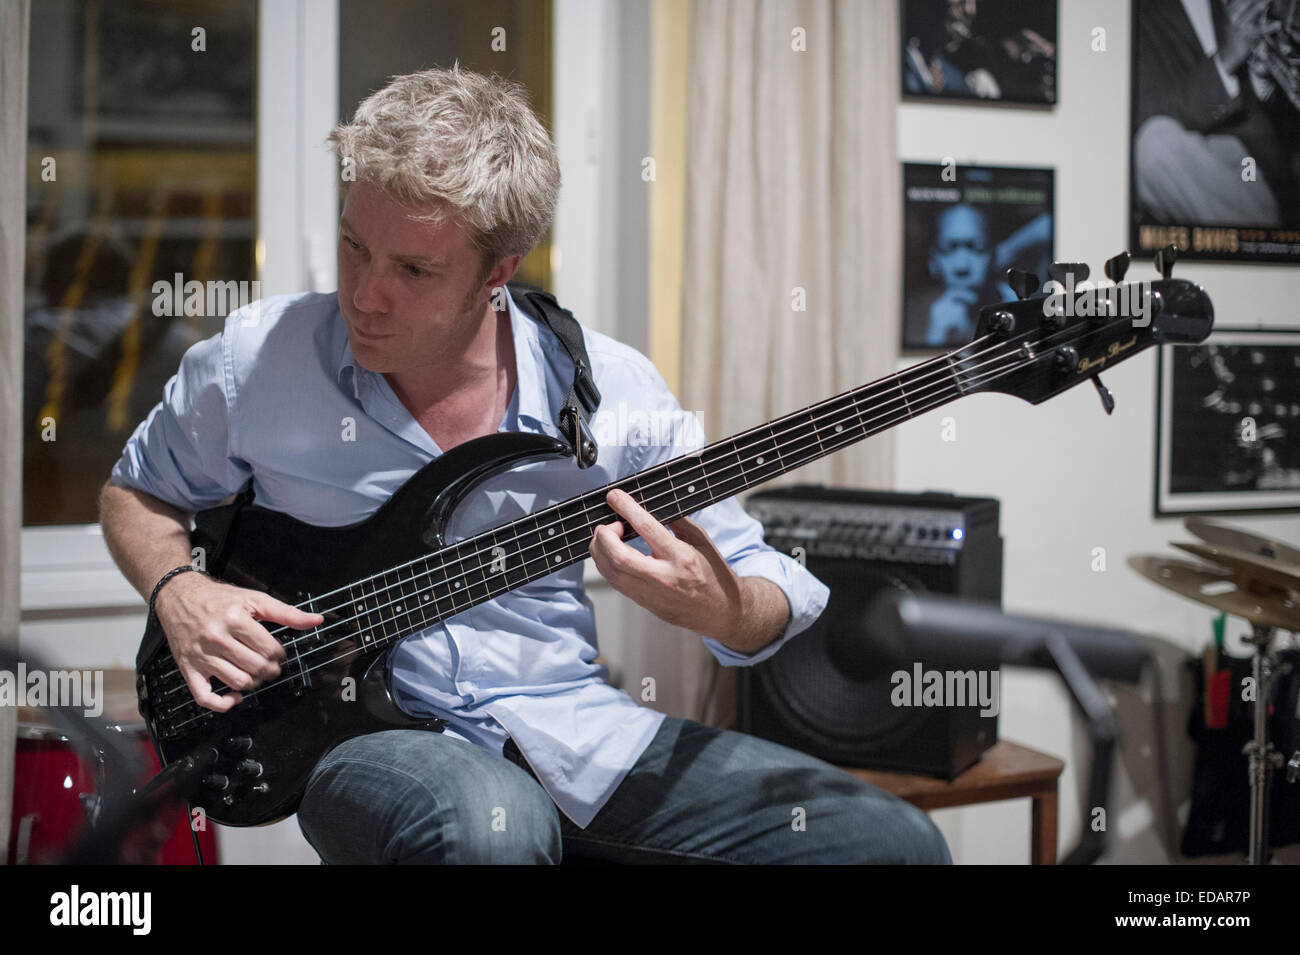 Jazz Bassist/ Composer, actor Kyle Eastwood, Clint Eastwood son - Stock Image